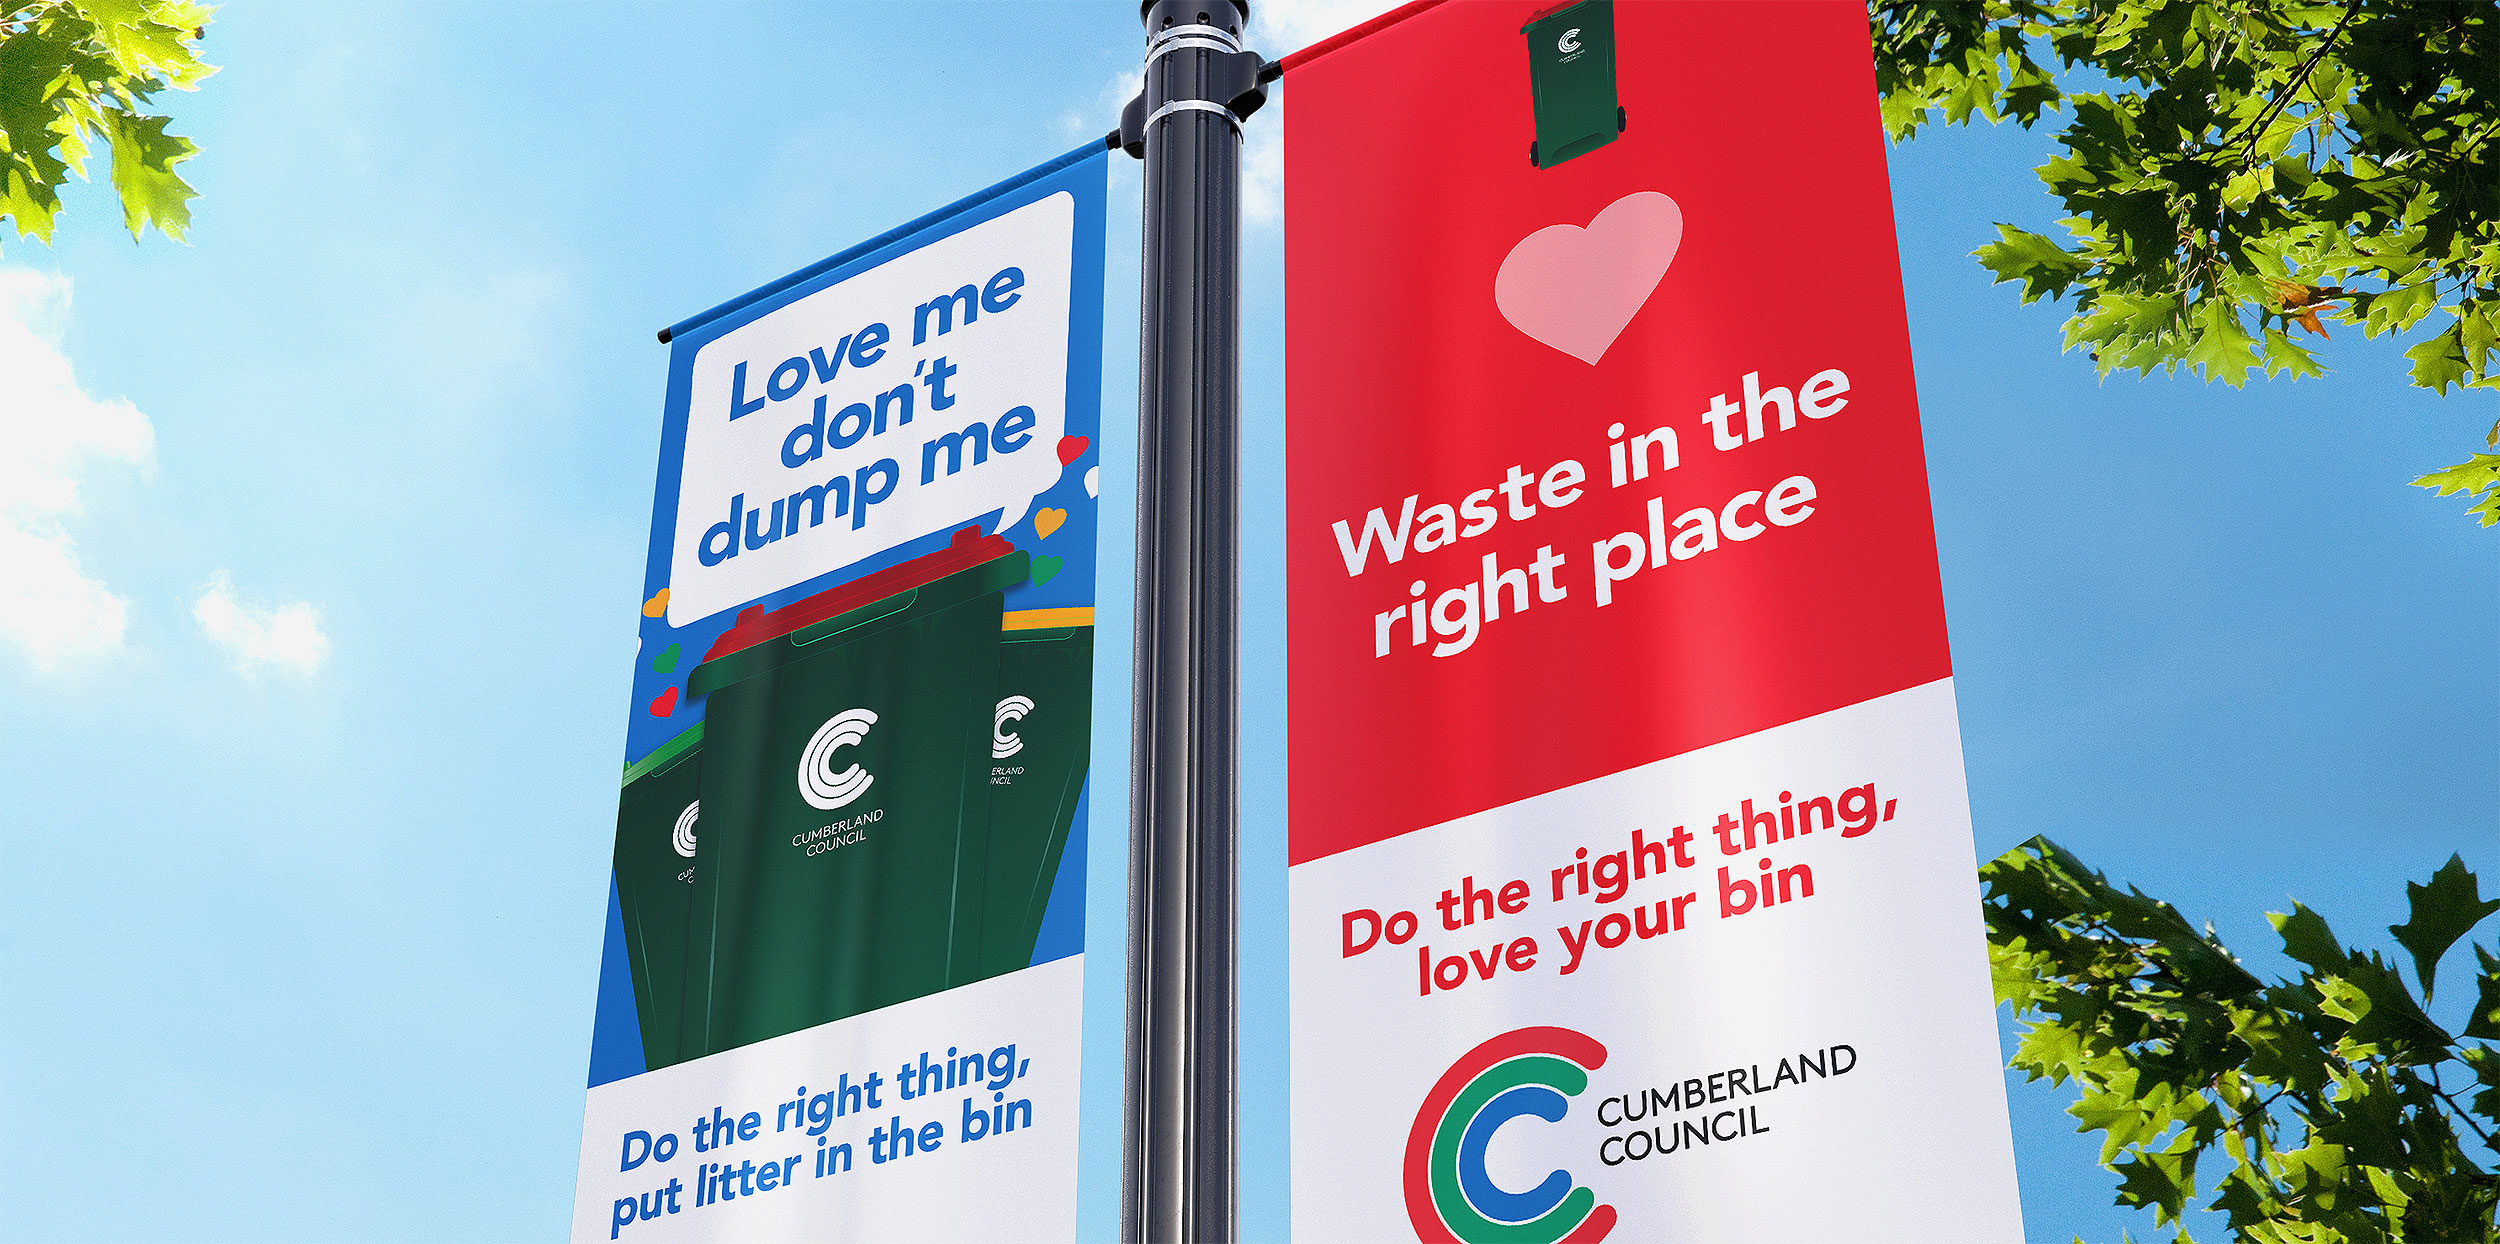 CUMBERLAND COUNCIL Waste CAMPAIGNS